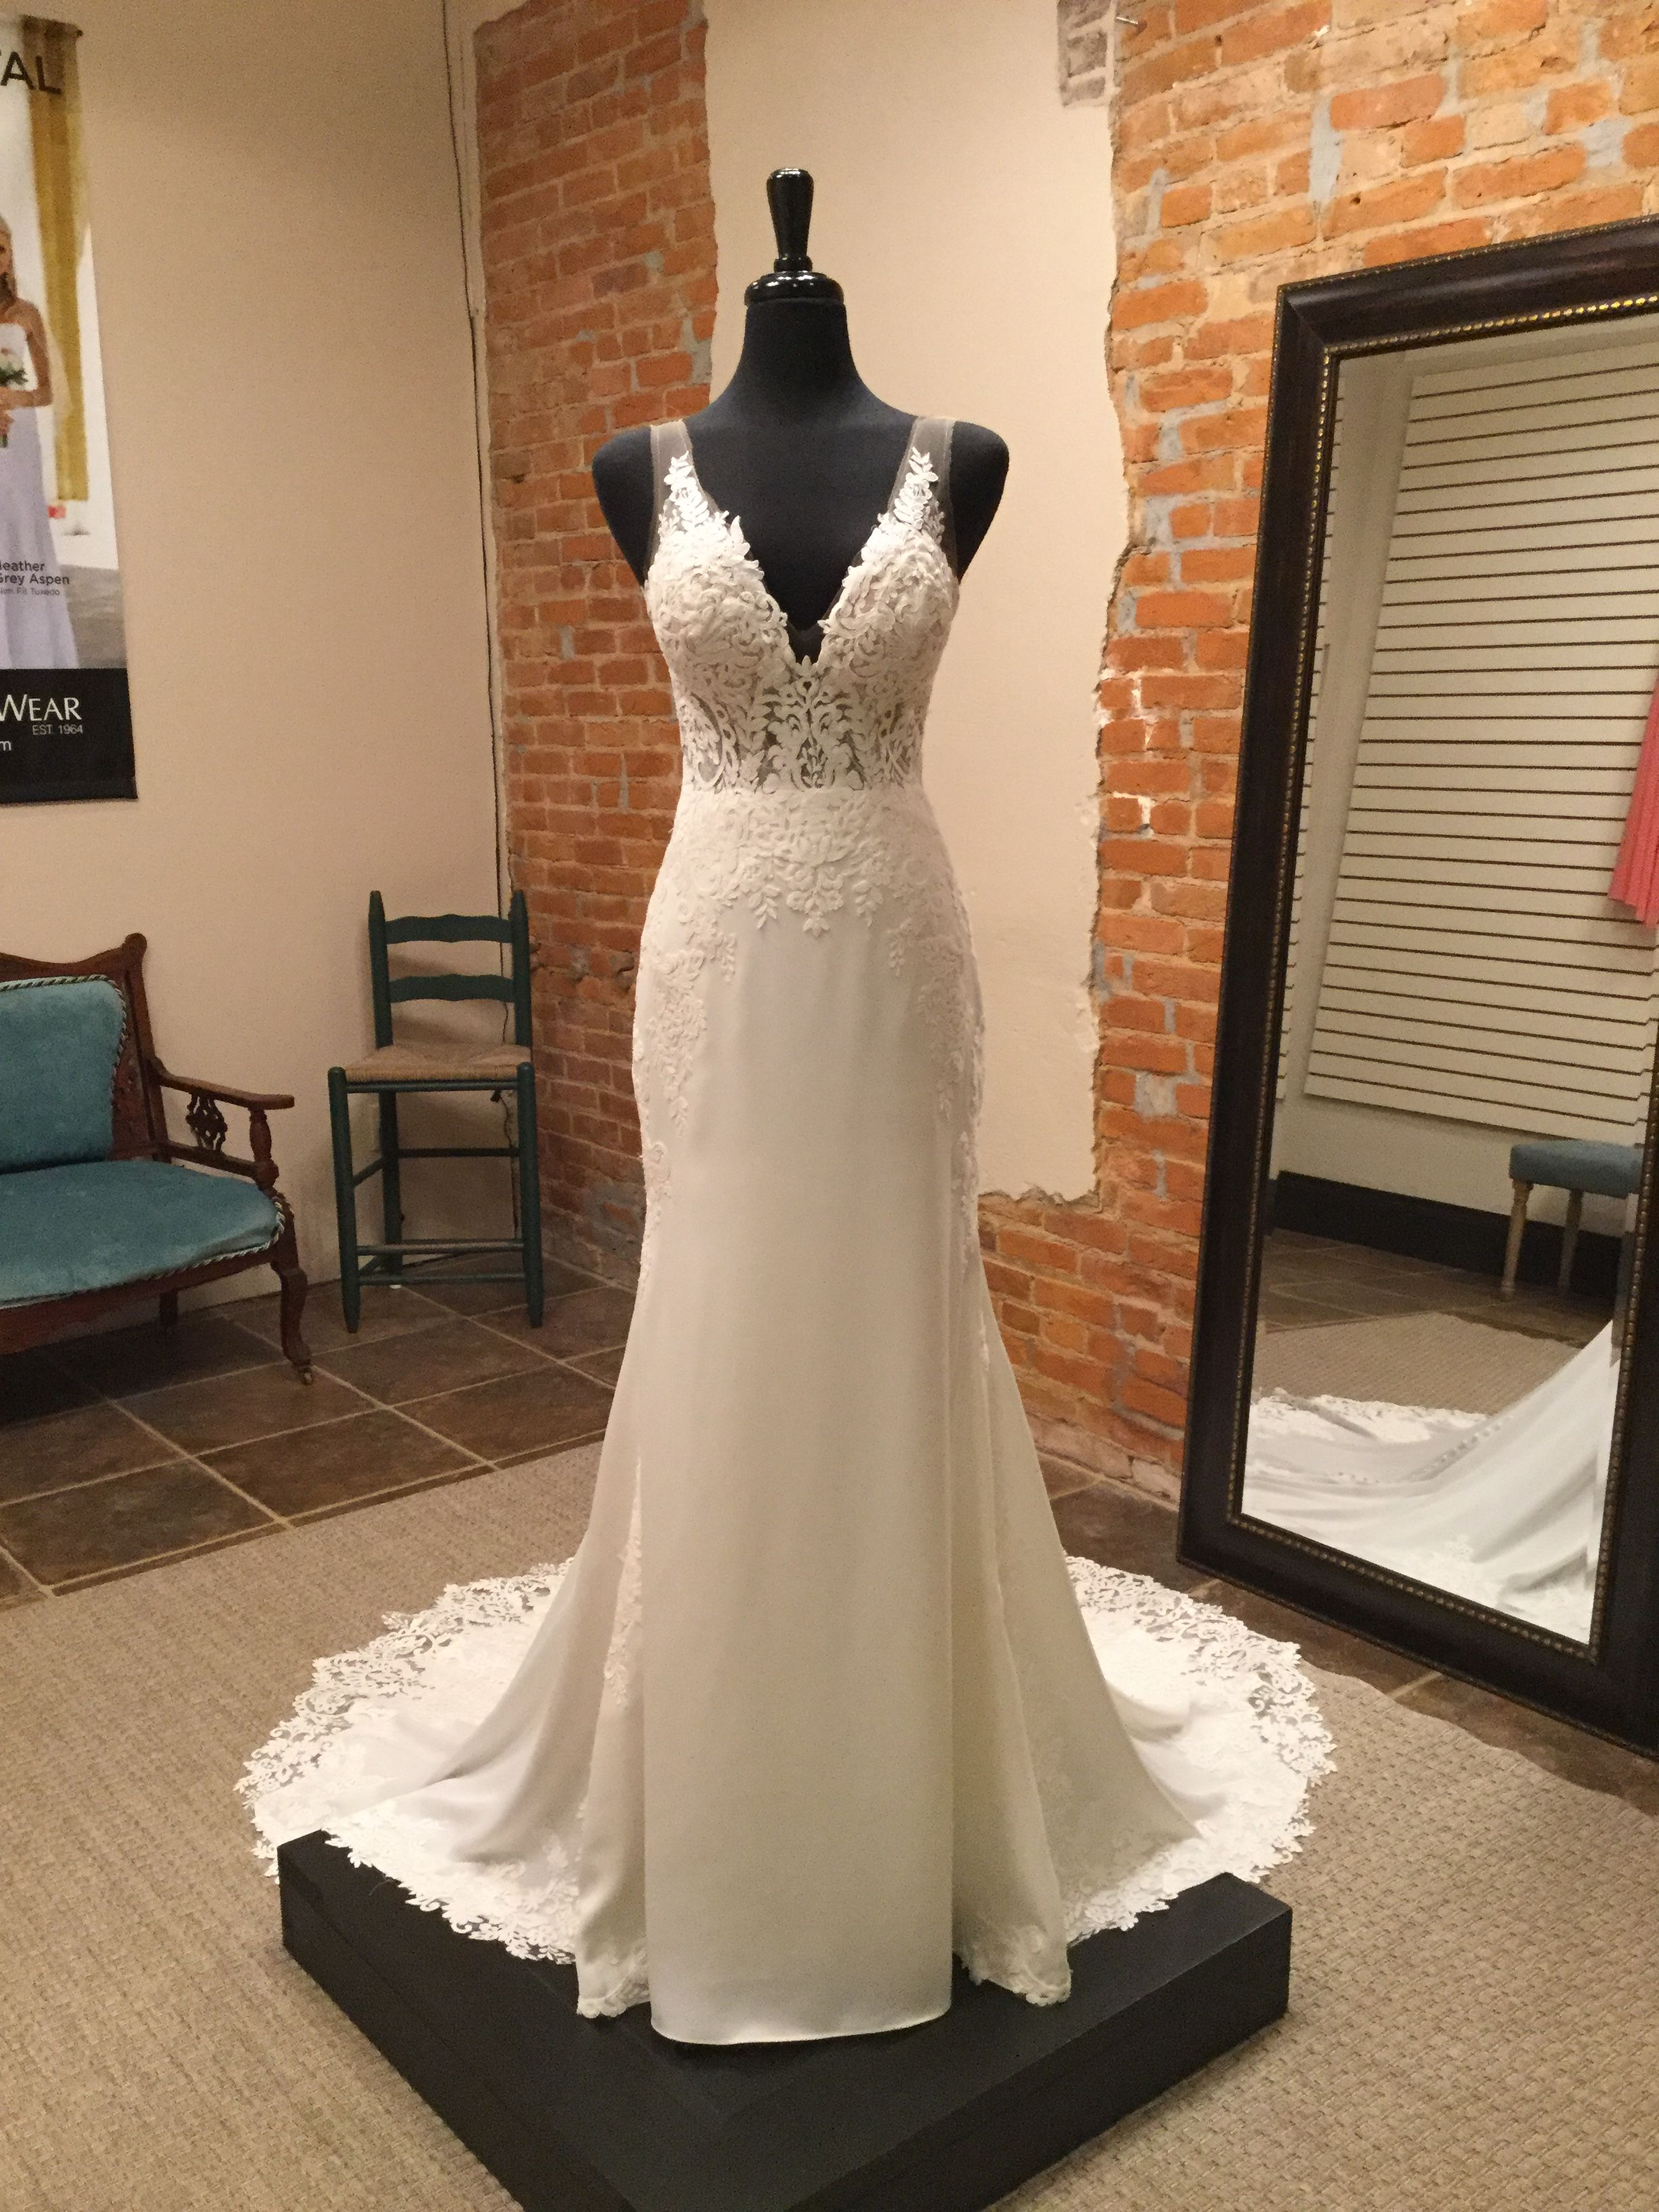 Elegant and modern wedding dress. Luxurious lace and crepe